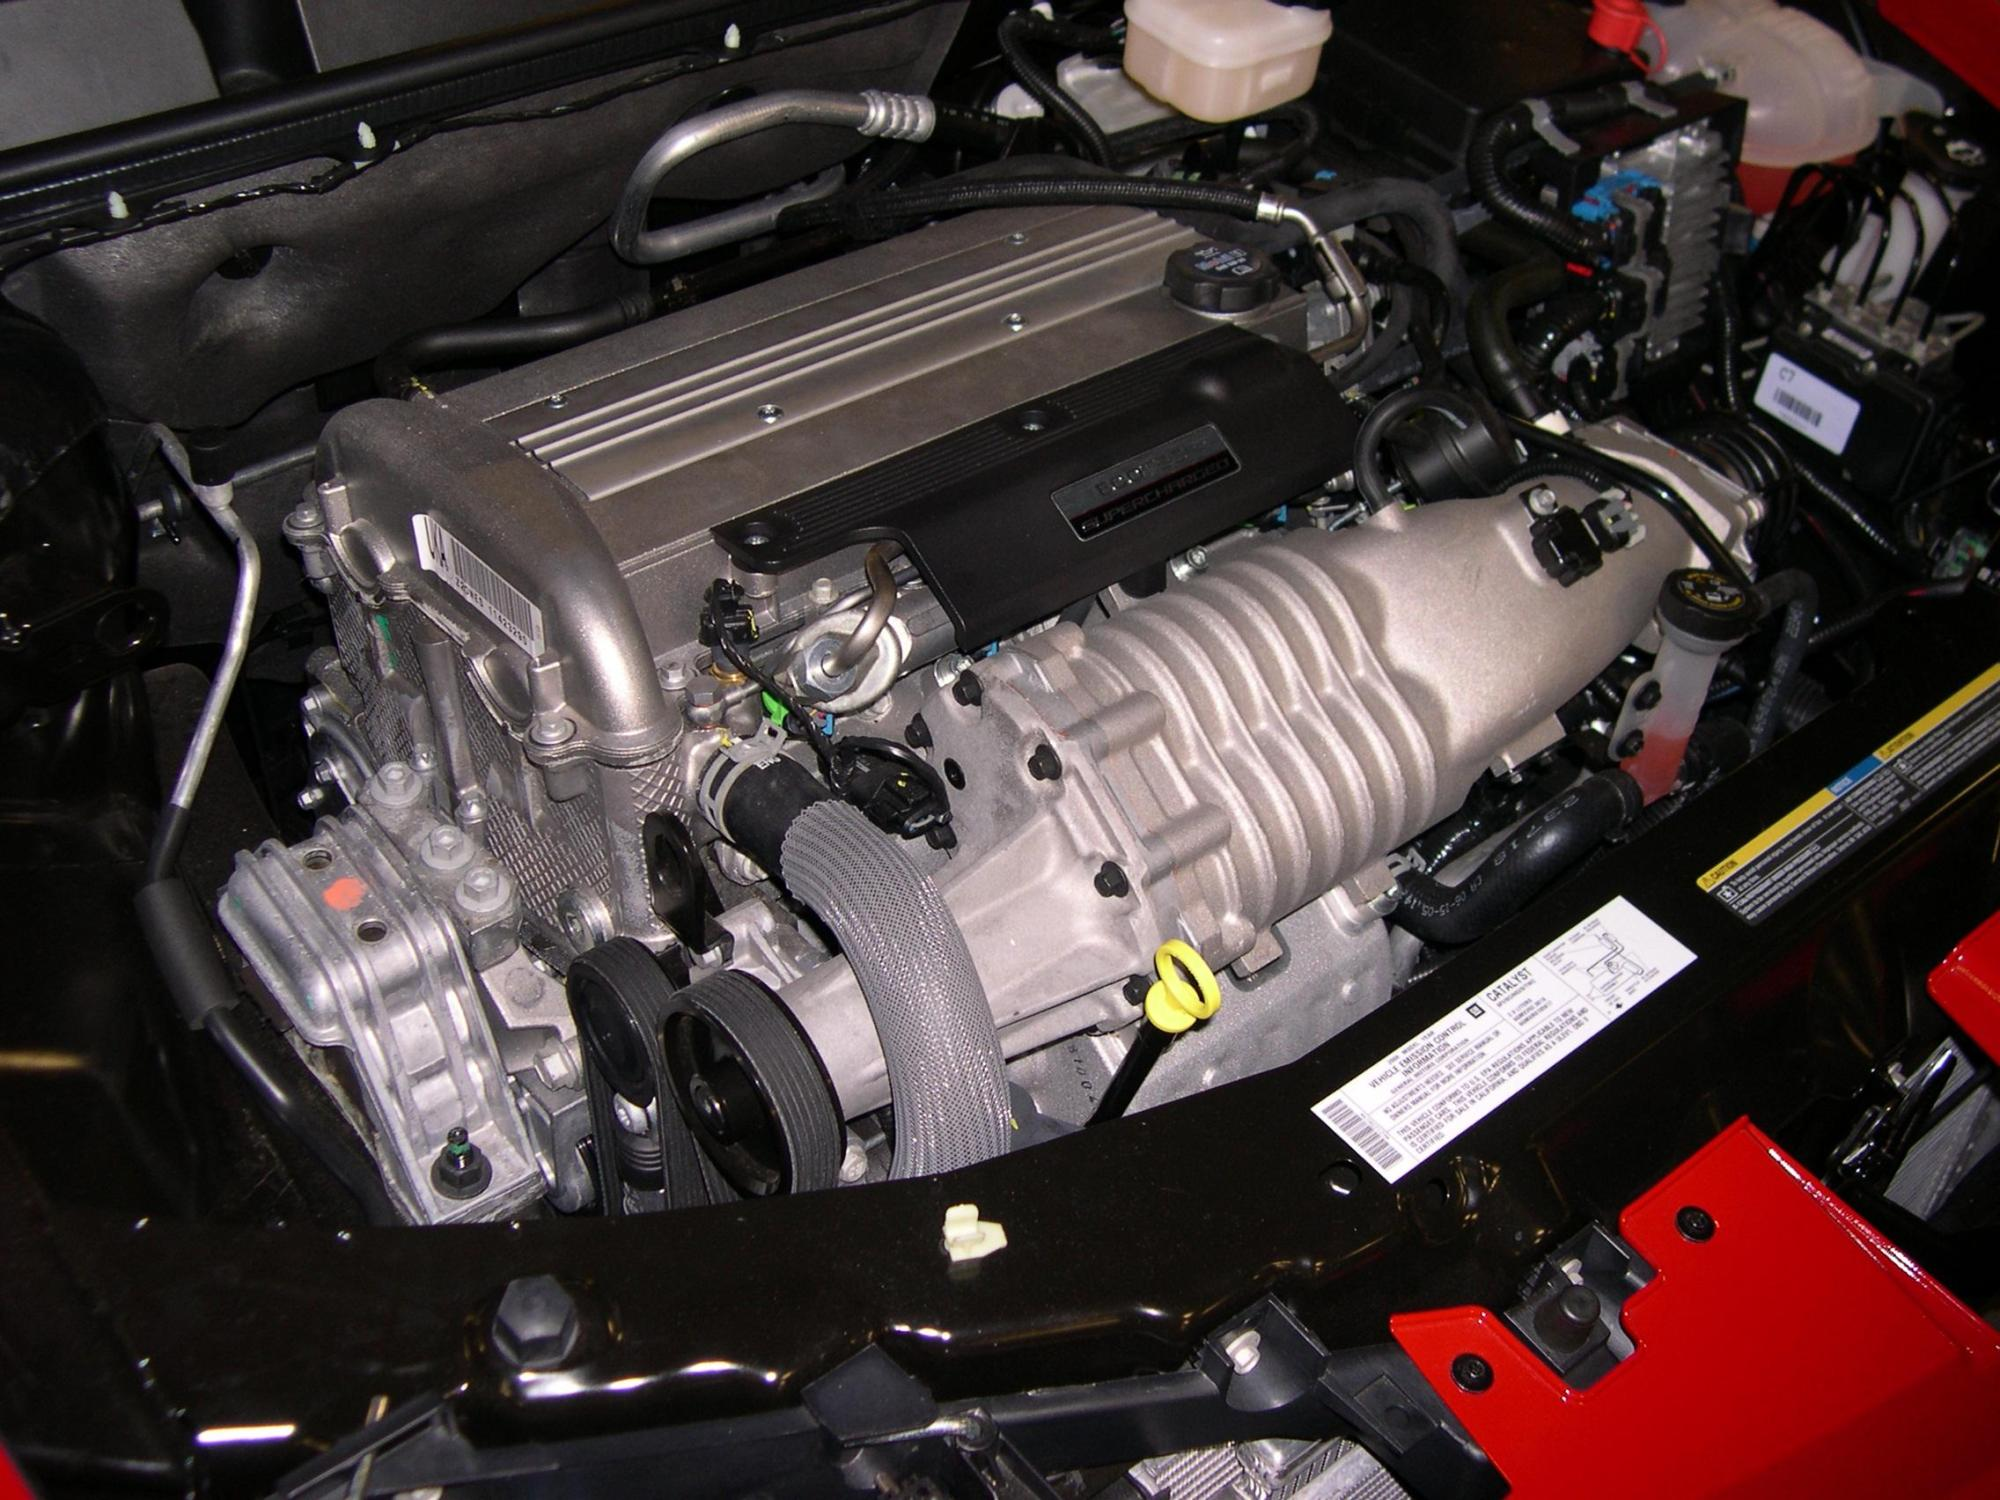 hight resolution of file 2006 saturn ion red line engine jpg wikimedia commonsfile 2006 saturn ion red line engine